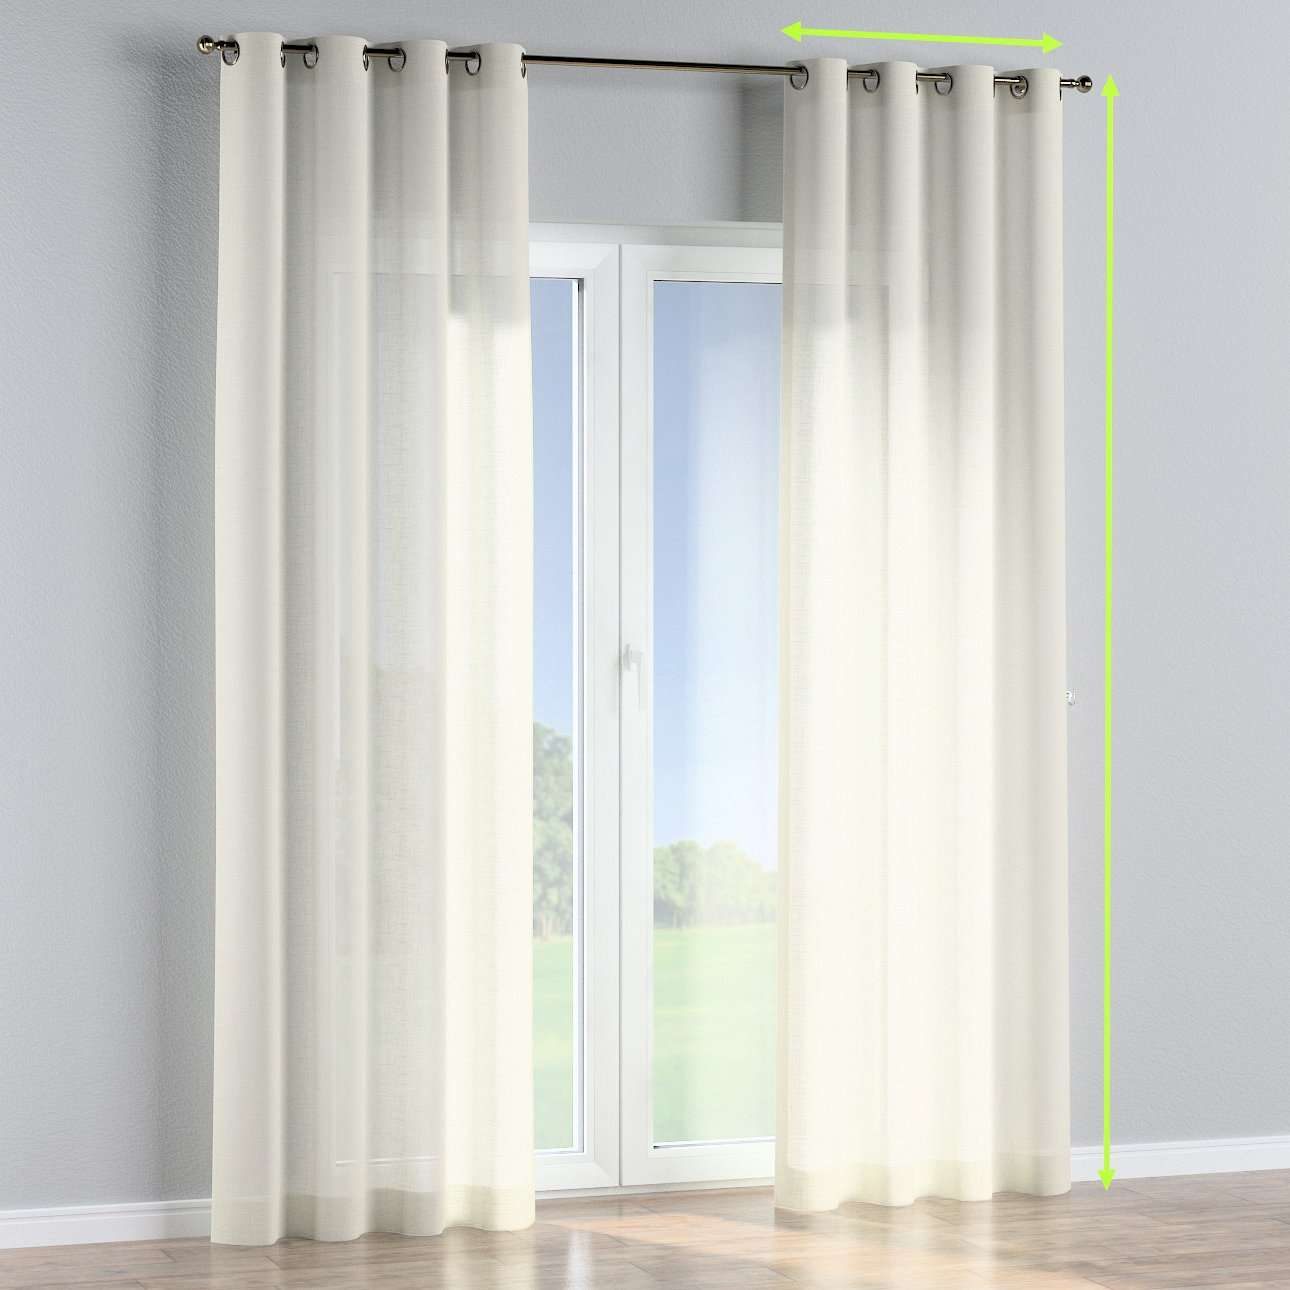 Eyelet curtains in collection Romantica, fabric: 128-88